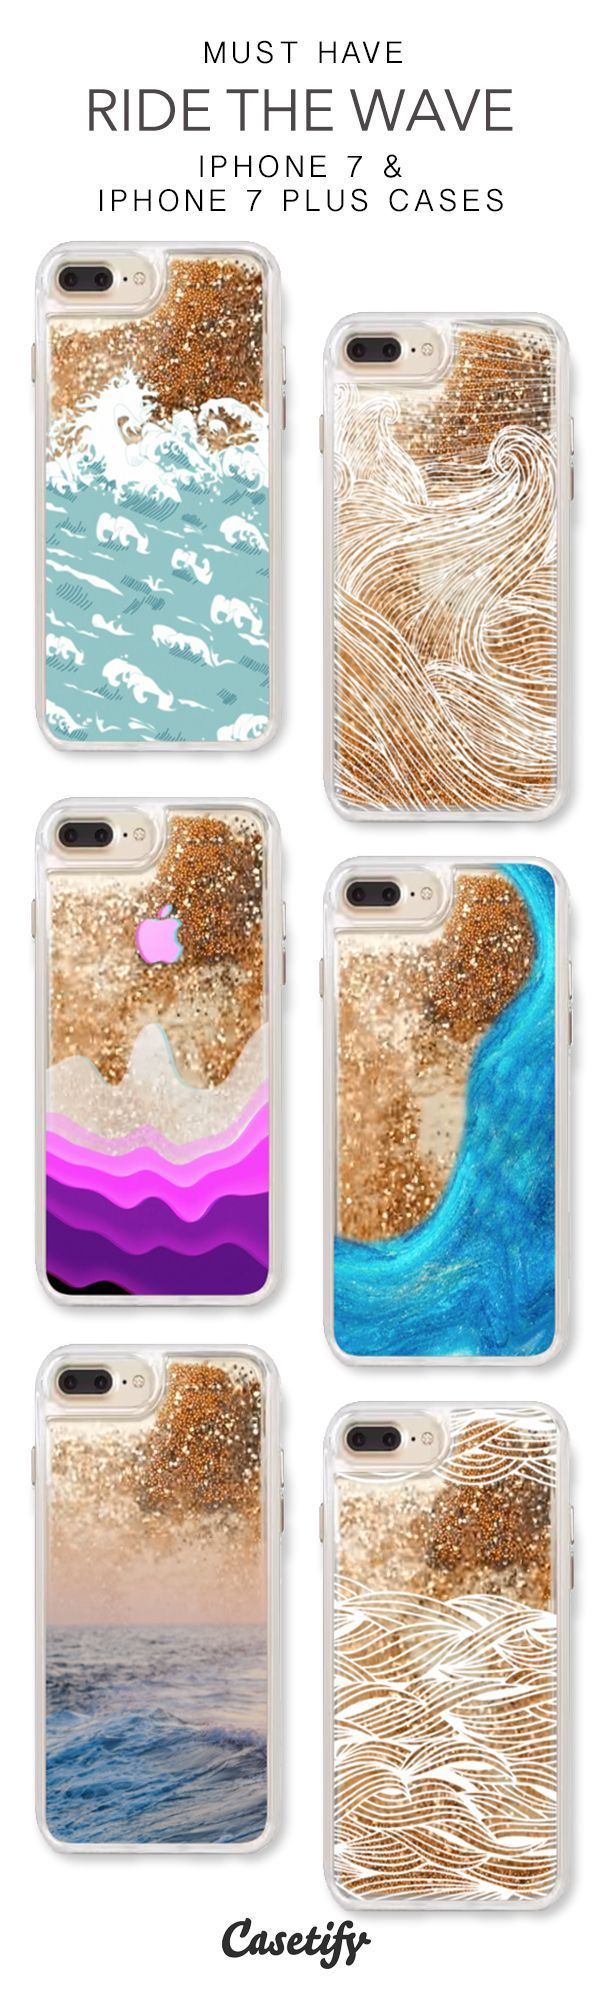 Must Have Ride The Waves iPhone 7 Cases & iPhone 7 Plus Cases. More protective liquid glitter ocean iPhone case here > https://www.casetify.com/en_US/collections/iphone-7-glitter-cases#/?vc=R1xIYV80z9